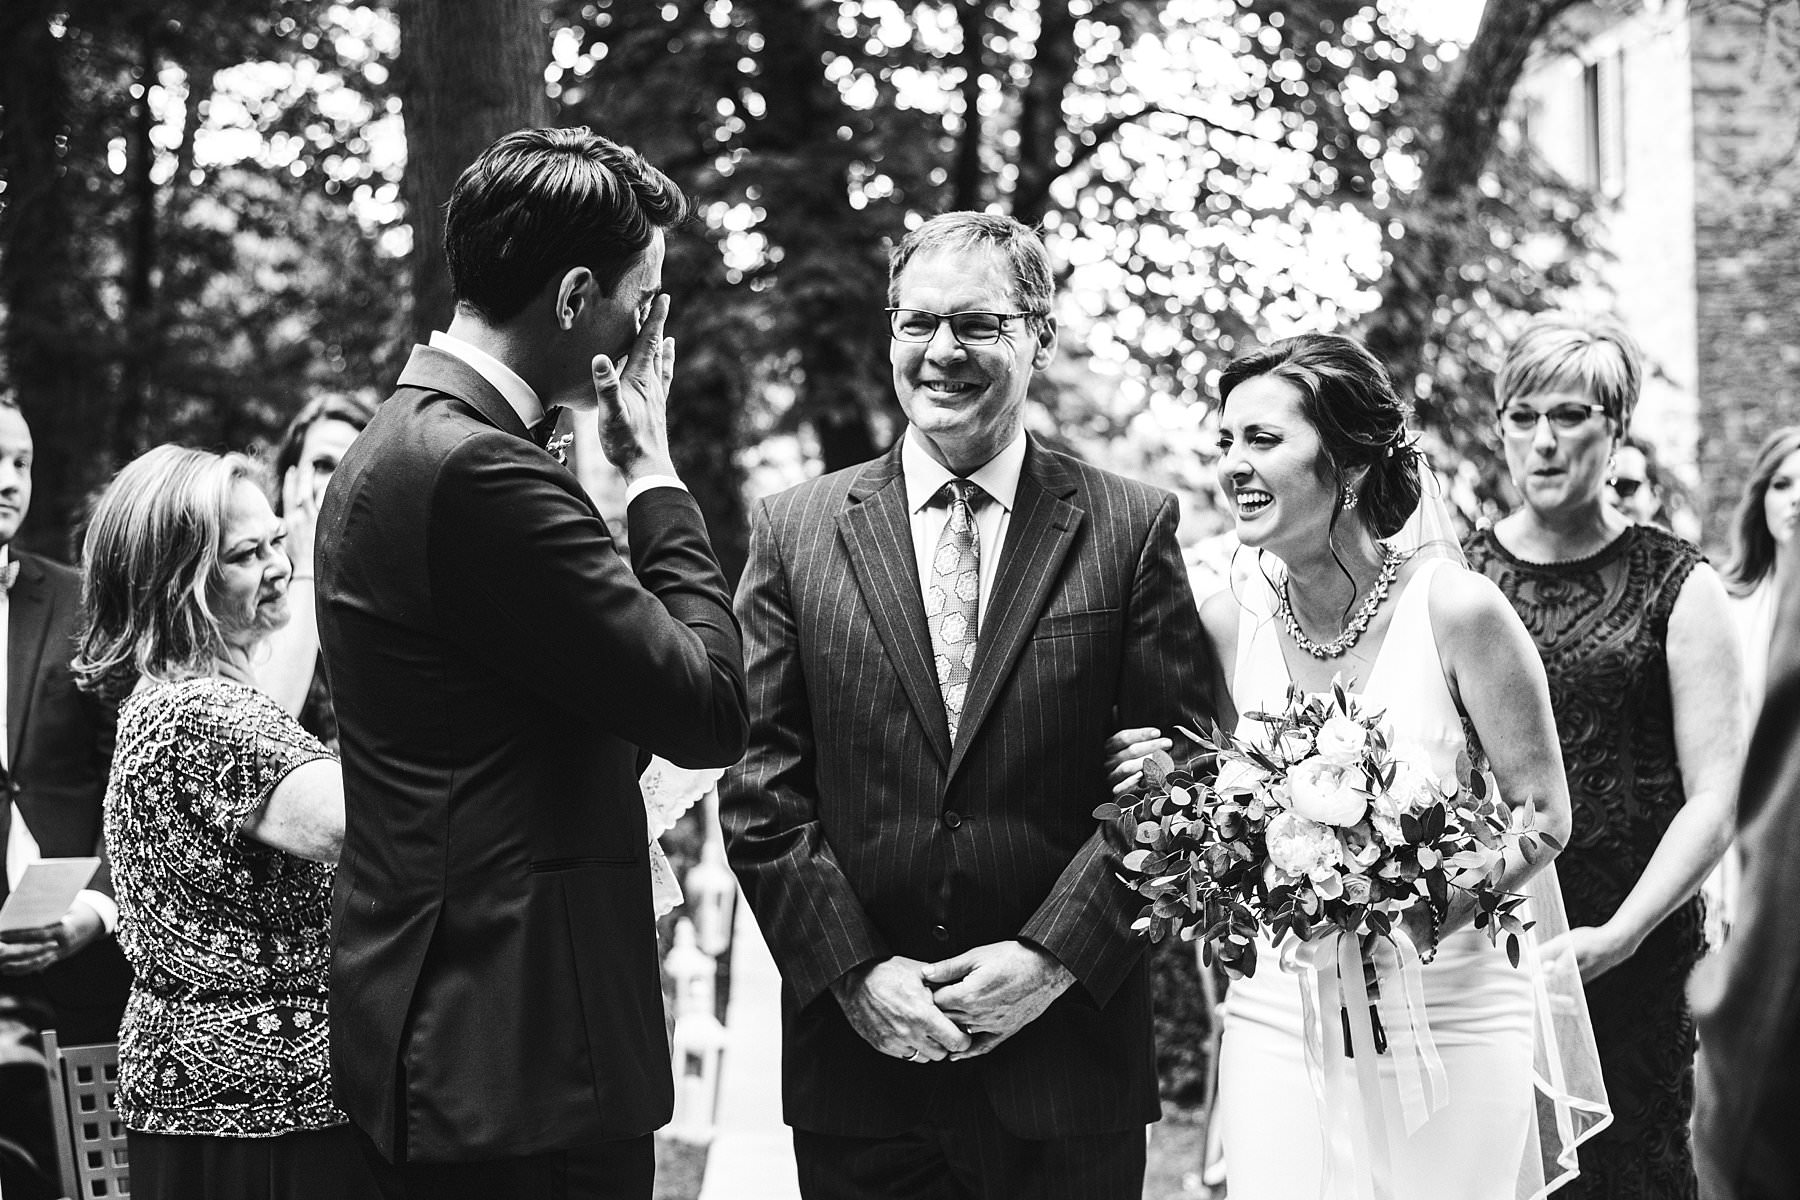 Katrina and John's small wedding in Valdarno. Emotional moment during bride walks in the outdoor symbolic wedding ceremony at Palazzo Vanneschi in the countryside of Tuscany near Bucine